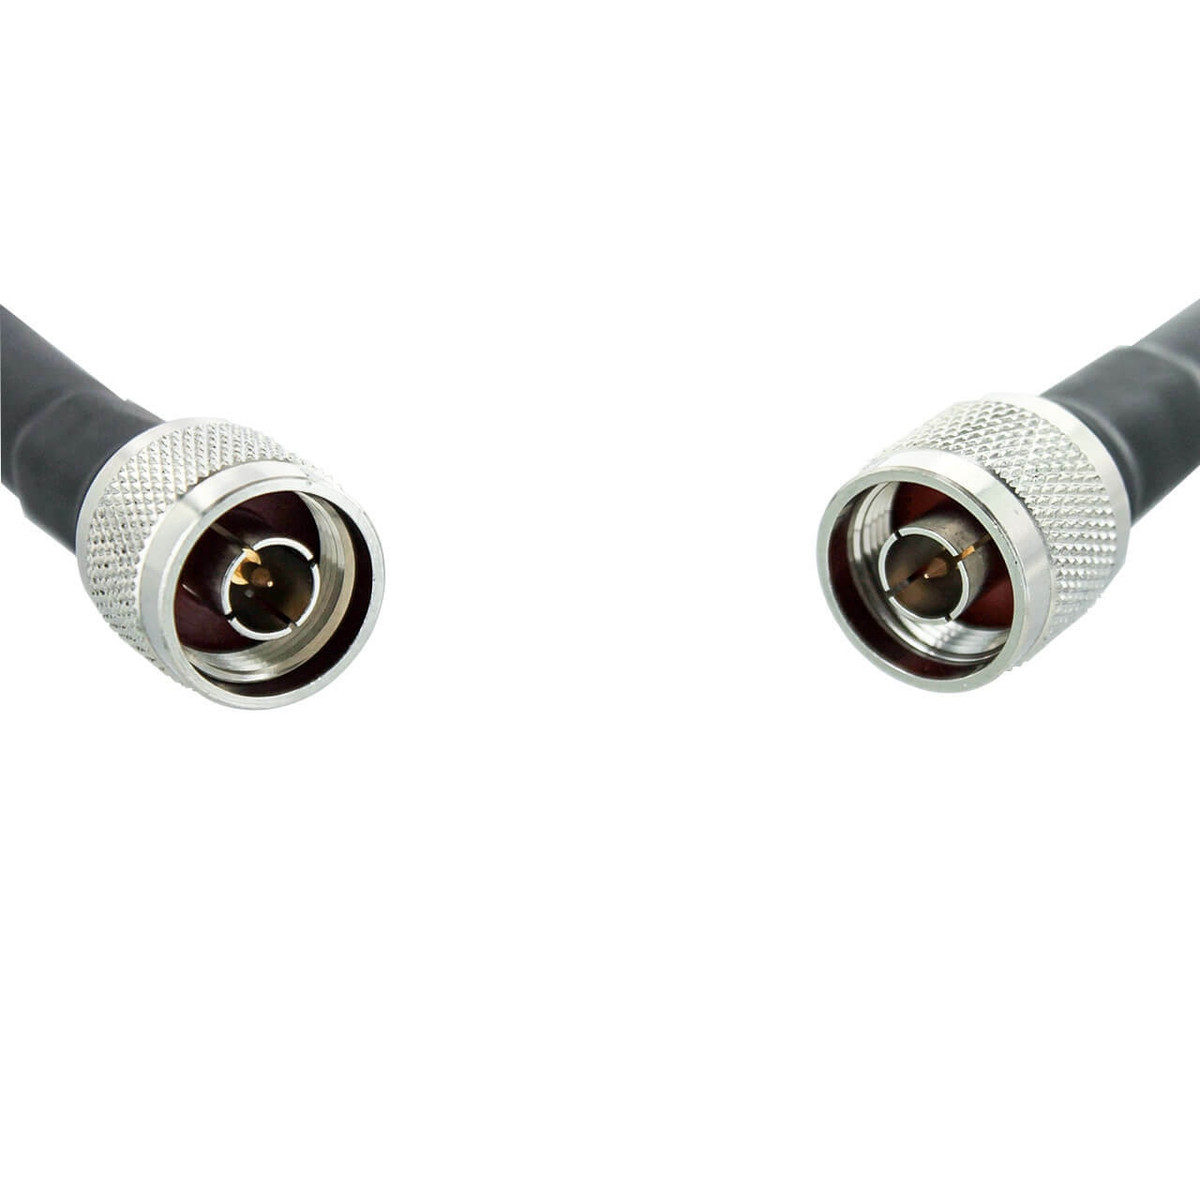 Bolton Technical N-Male to N-Male Bolton400 Ultra Low-Loss Coax Cable | 30 ft. Cable